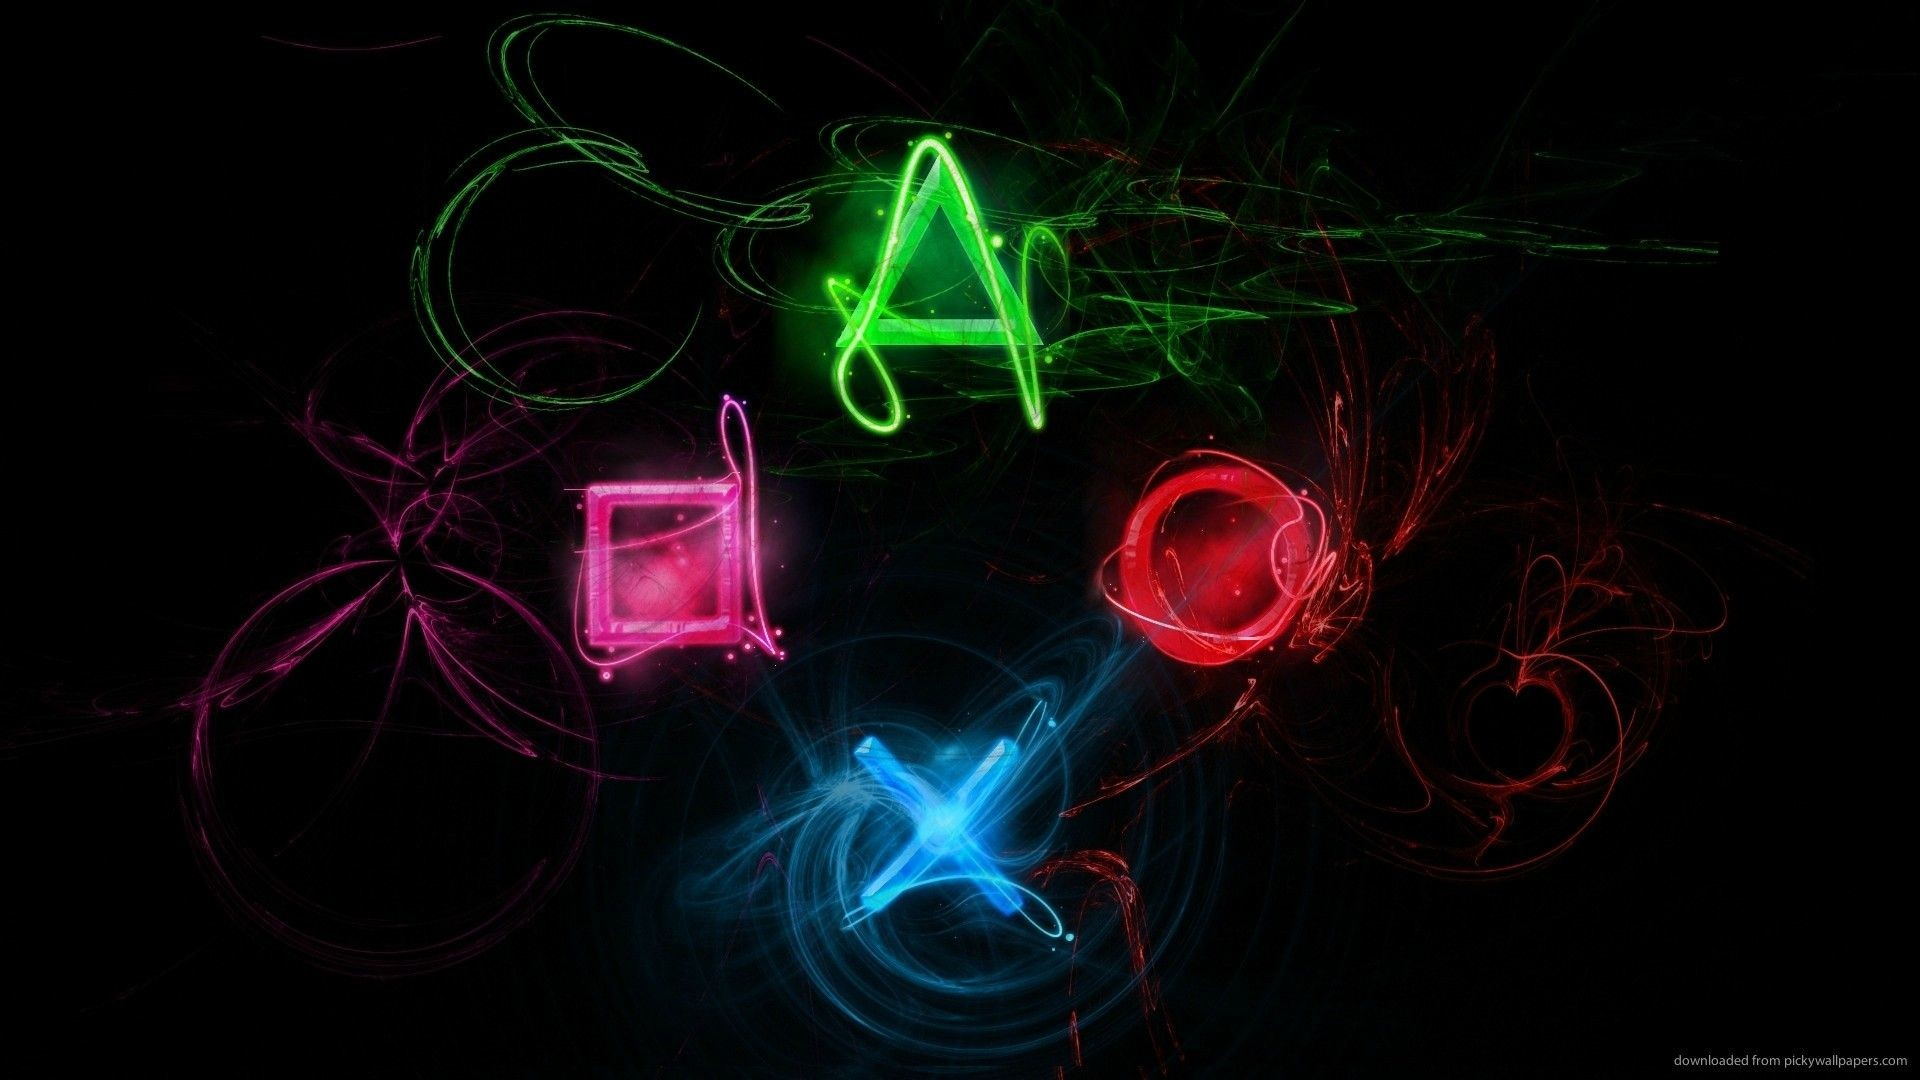 1920x1080 Playstation Controller wallpaper